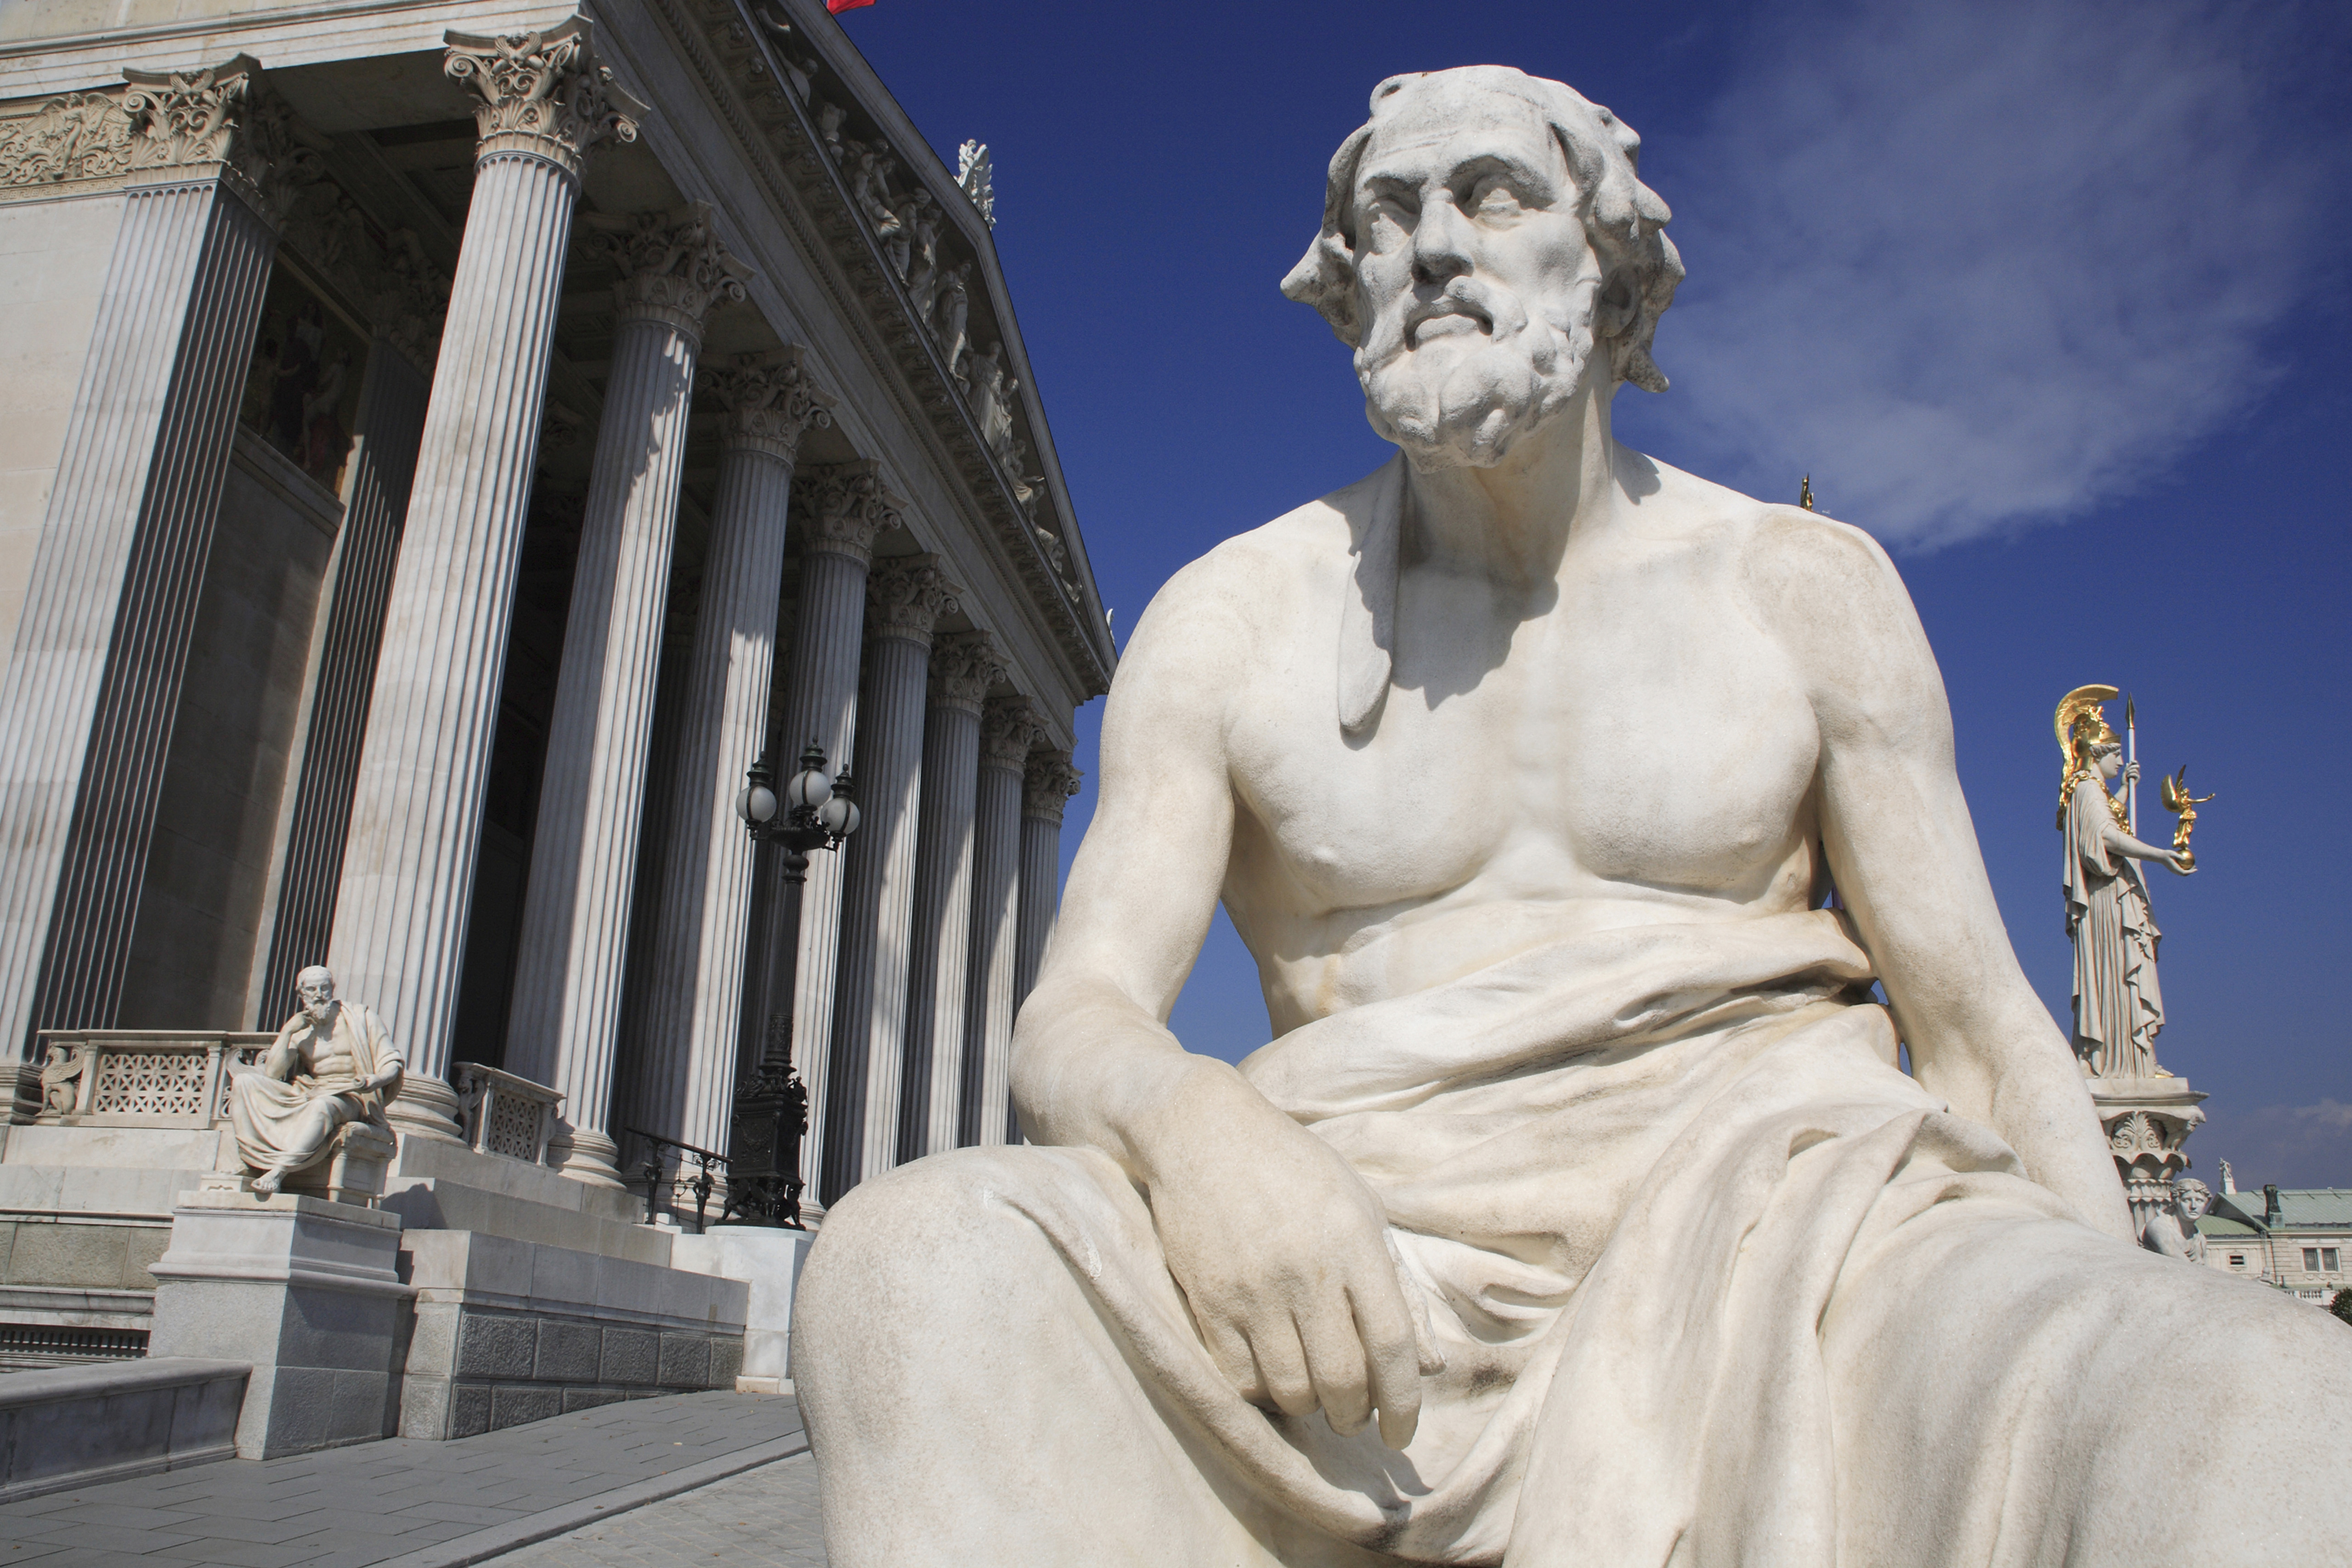 Statue of Greek philosopher Thucydides in front of Parliament building in Vienna, Austria.